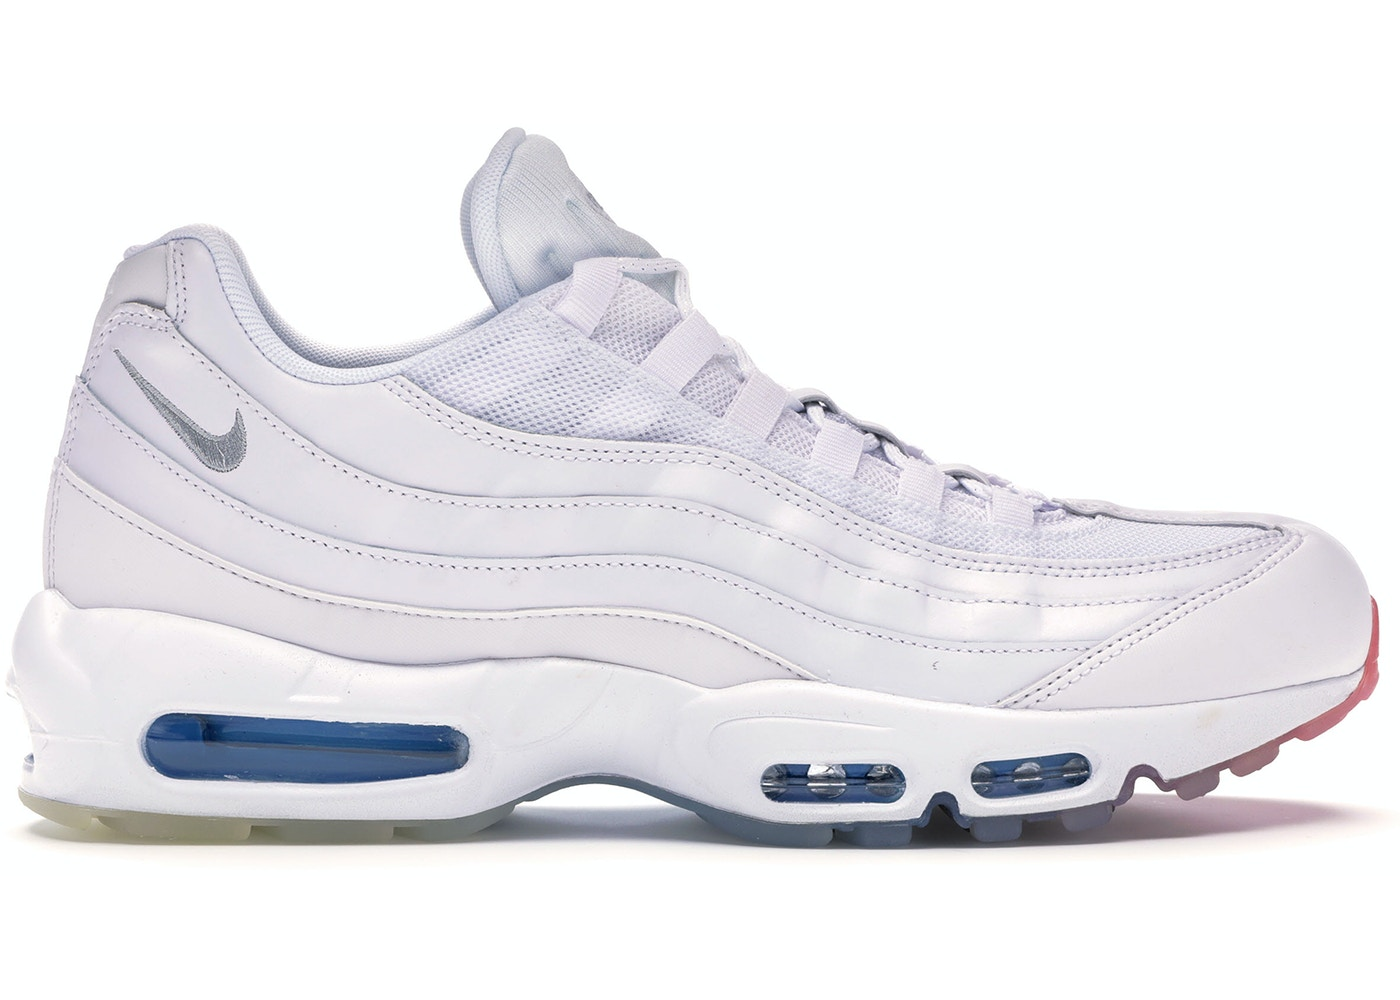 detailing 9e4cf 6b26a Buy Nike Air Max 95 Shoes   Deadstock Sneakers